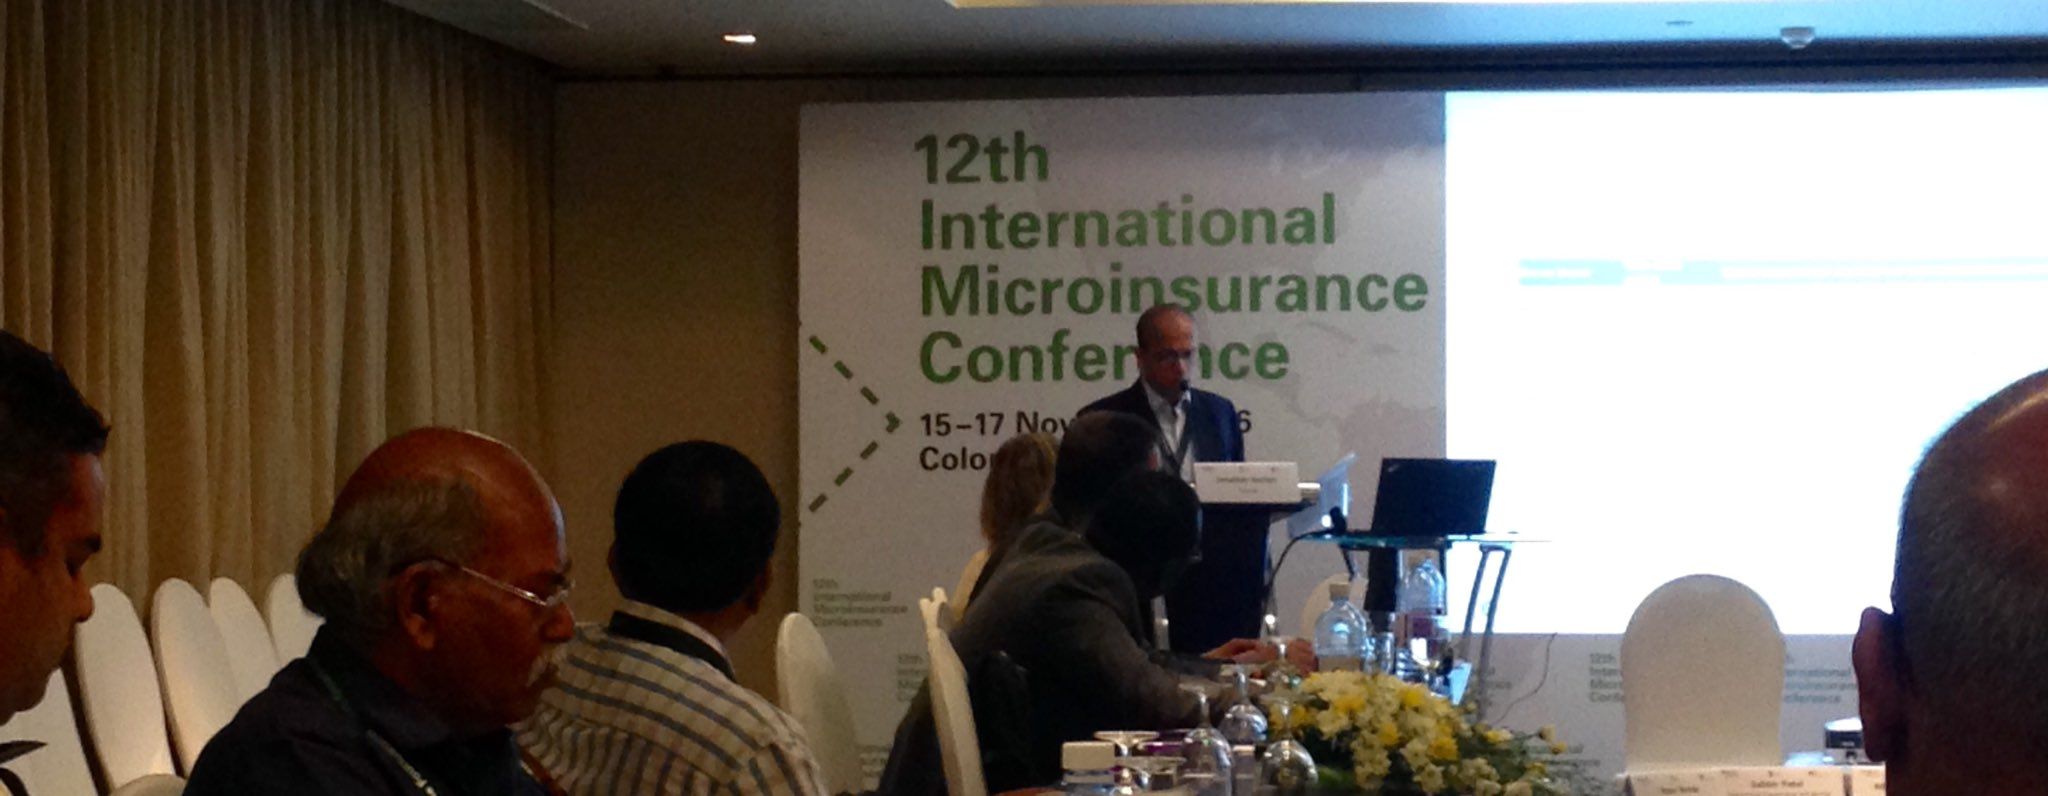 Jonathan Anchen @SwissRe discusses the value of mutuals in #microinsurance + the challenges in creating a regulatory space for them #12thIMC https://t.co/ml0F6SWYJv